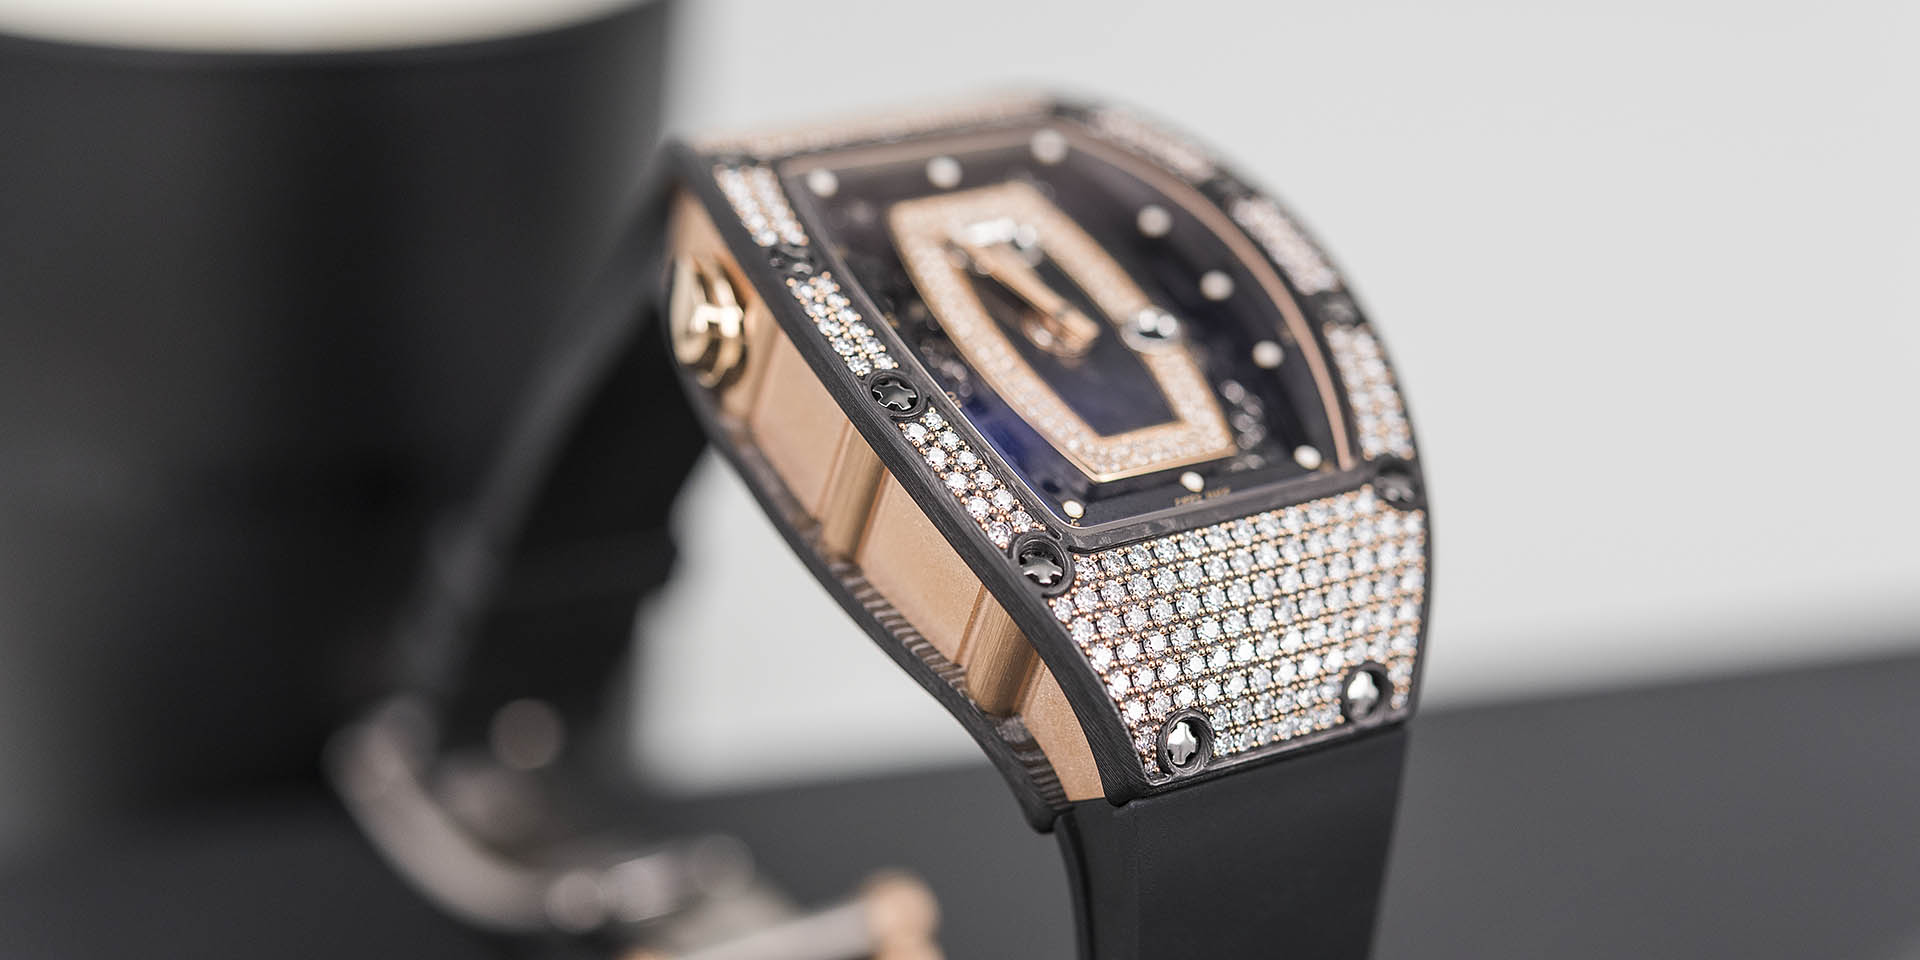 richard-mille-rm-037-automatic-4.jpg